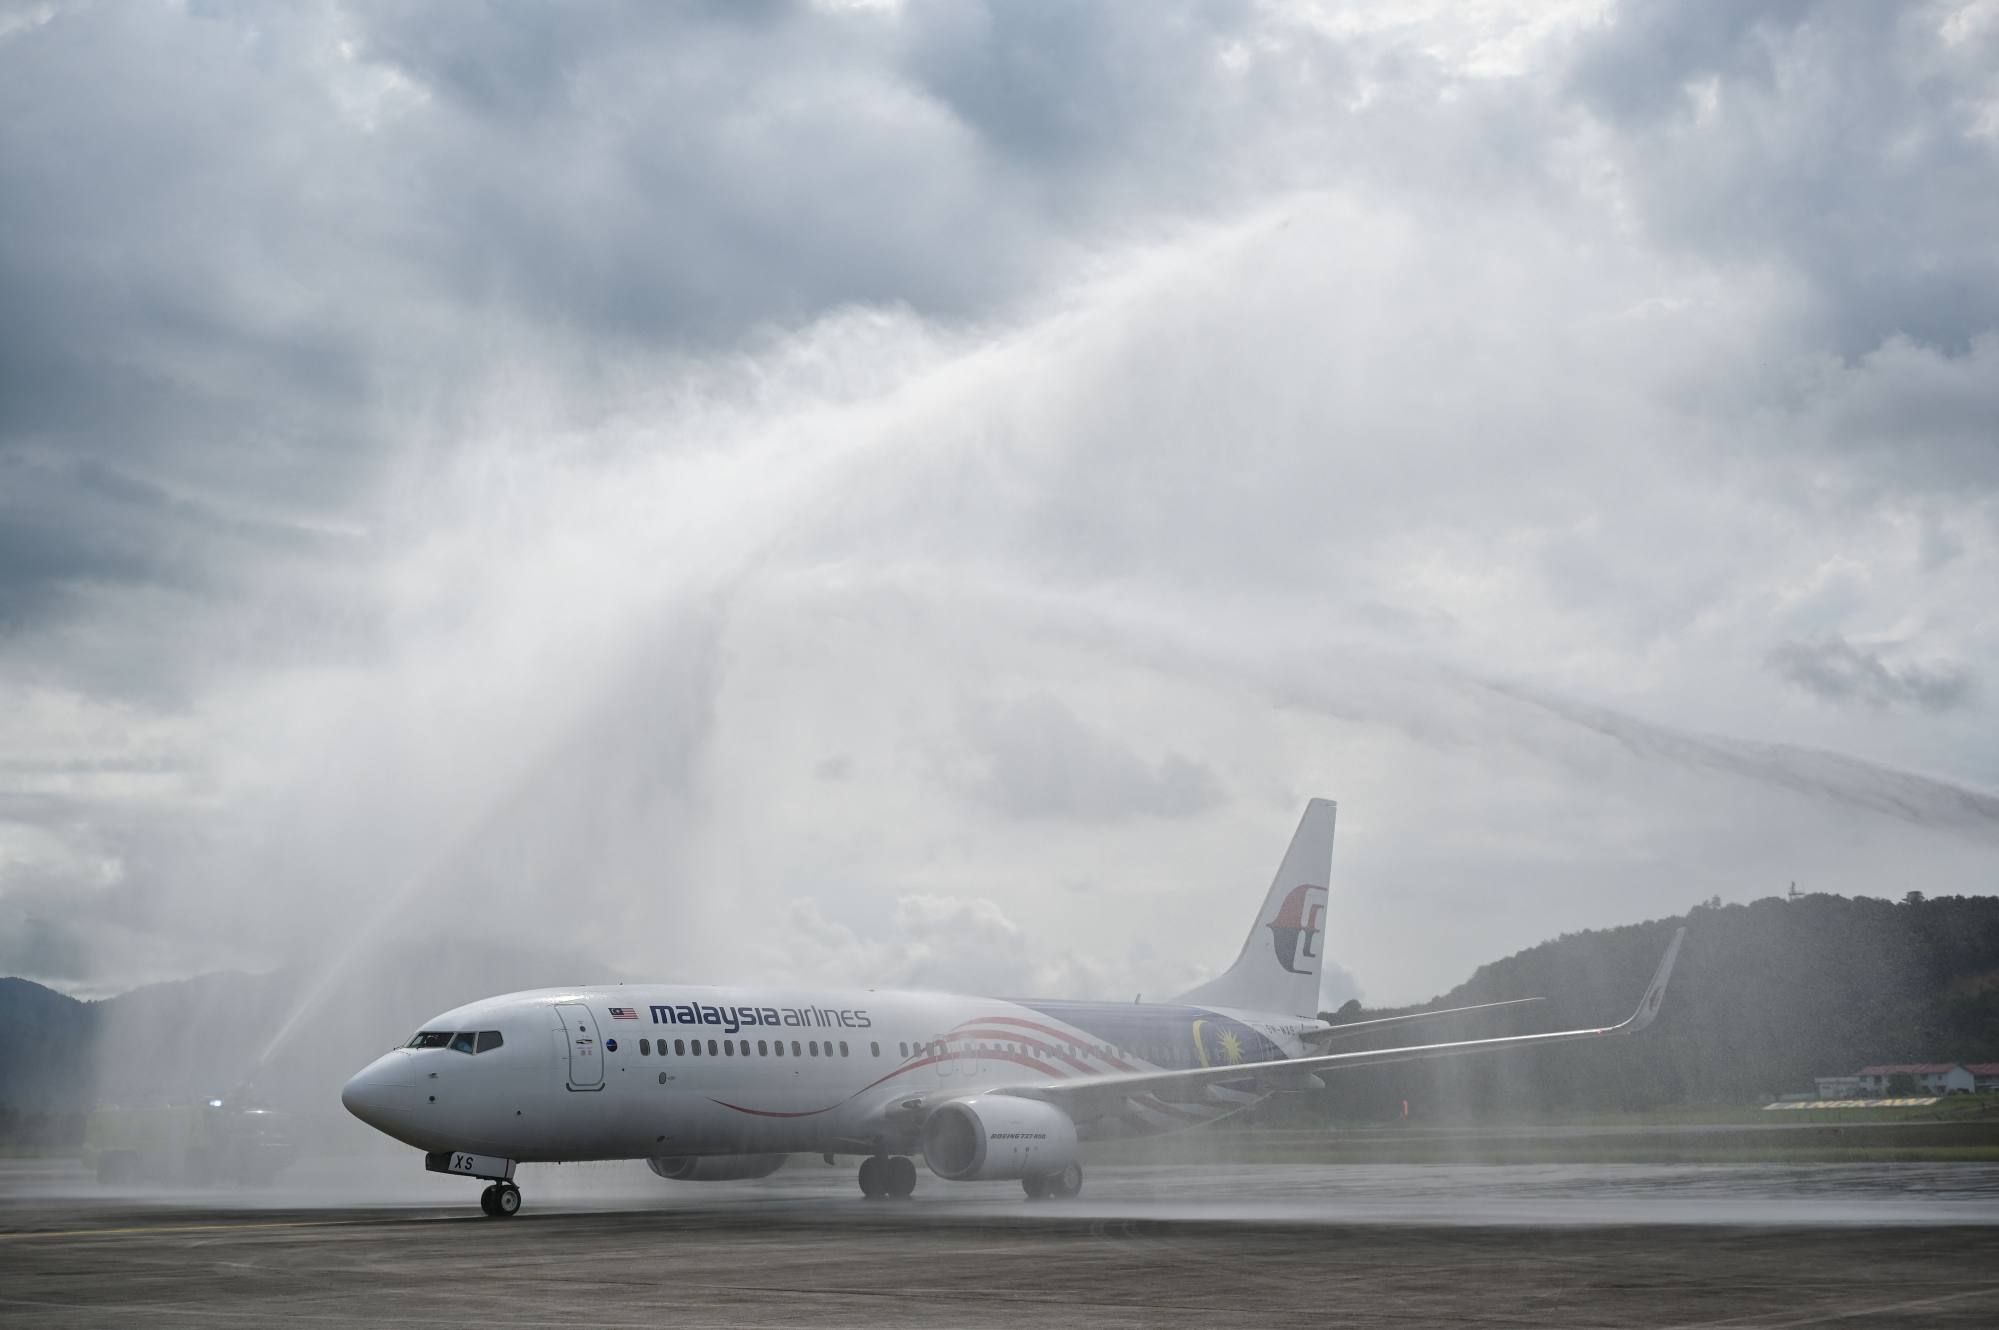 A water salute welcomes the first Malaysia Airlines aircraft to touch down in Langkawi from Kuala Lumpur on September 16 after the opening of a travel bubble for domestic visitors. Photo: AFP